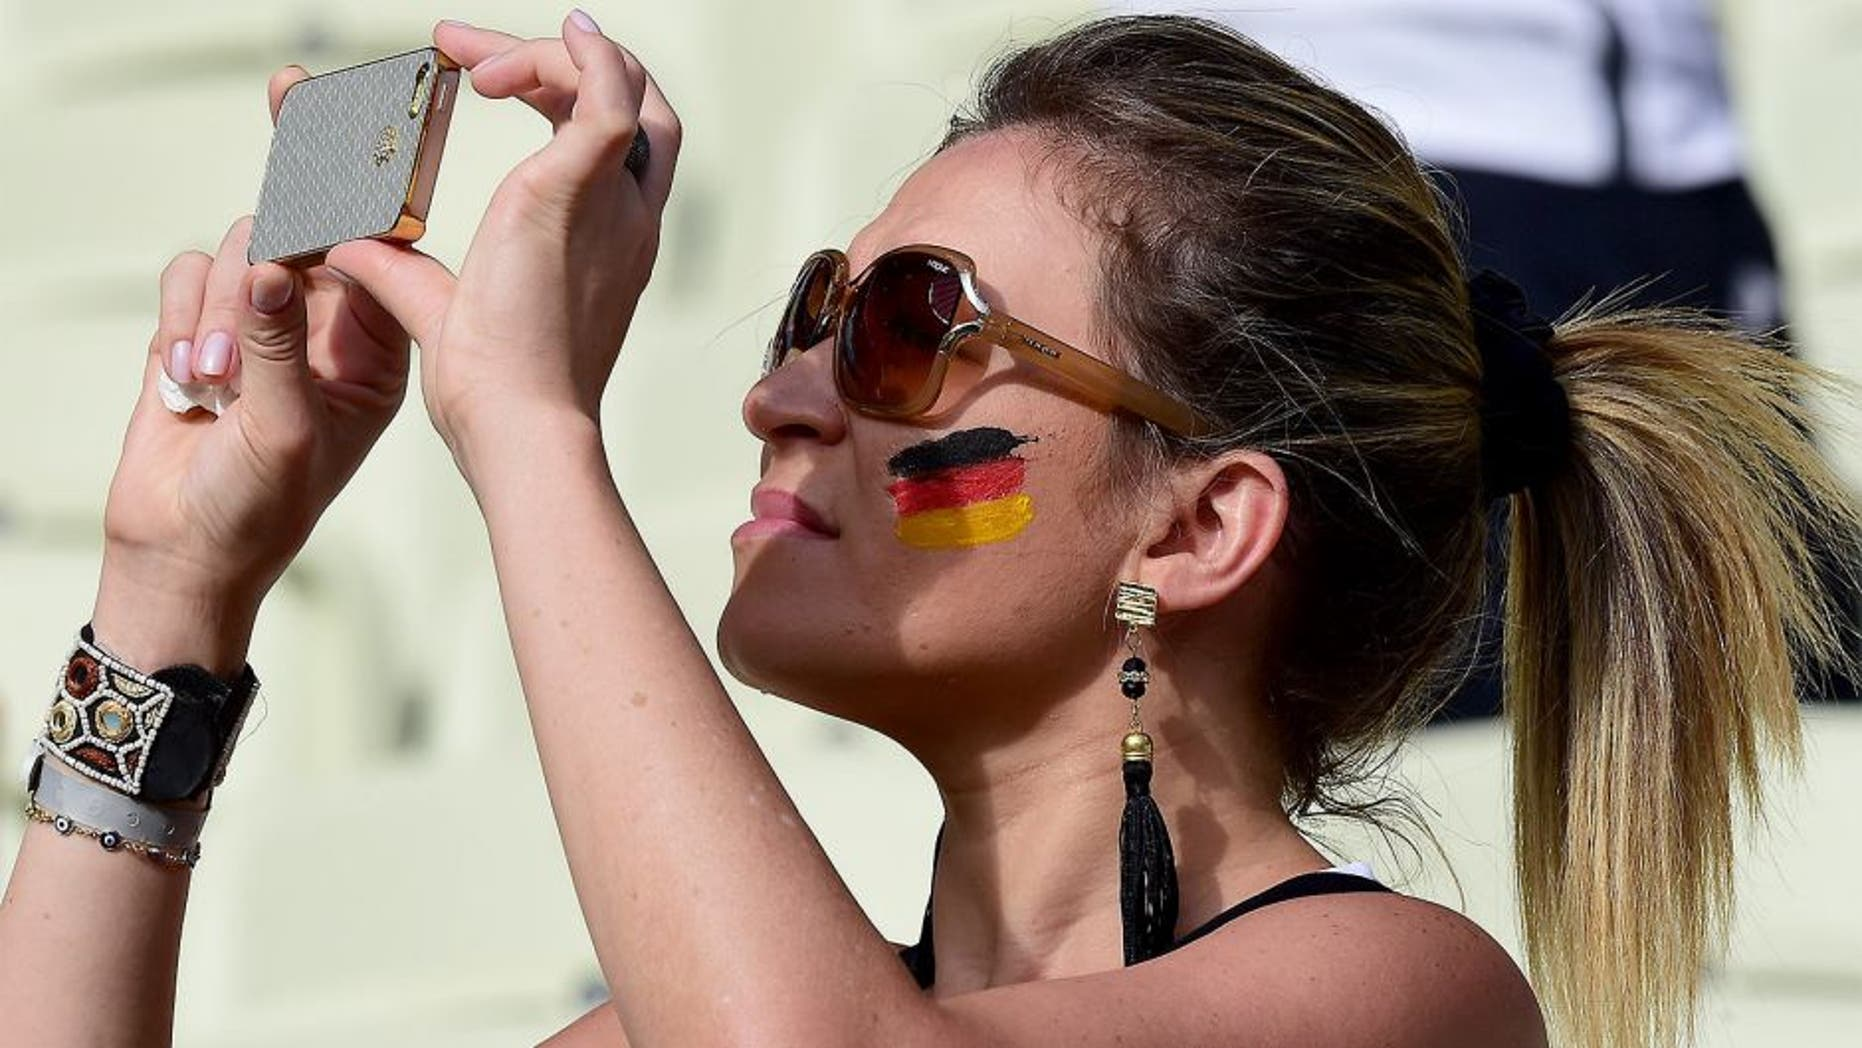 A German fan takes pictures with her phone before the start of the Group G football match between Germany and Ghana at the Castelao Stadium in Fortaleza during the 2014 FIFA World Cup on June 21, 2014. AFP PHOTO / JAVIER SORIANO